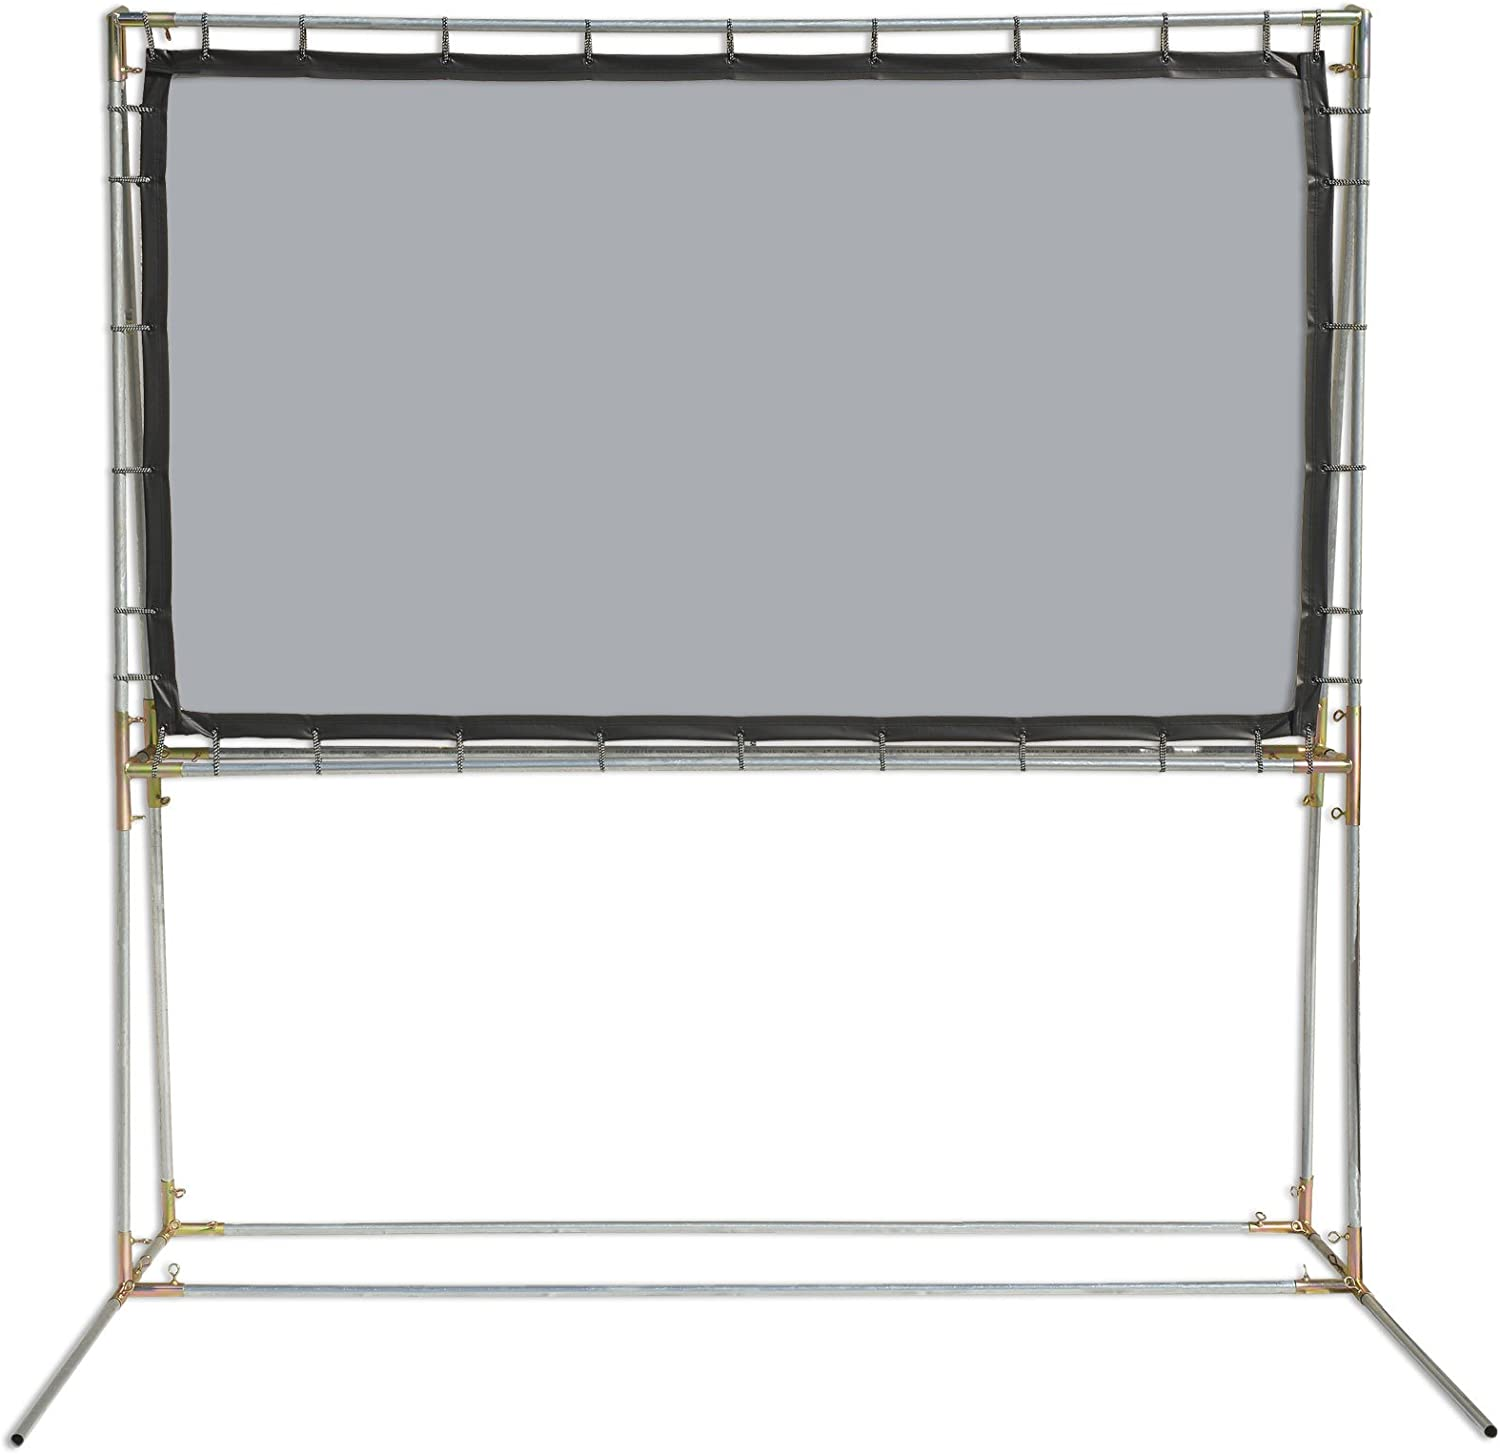 Carl's Blackout Cloth Hanging Projector Screen Kit 6.75x12 White 16:9